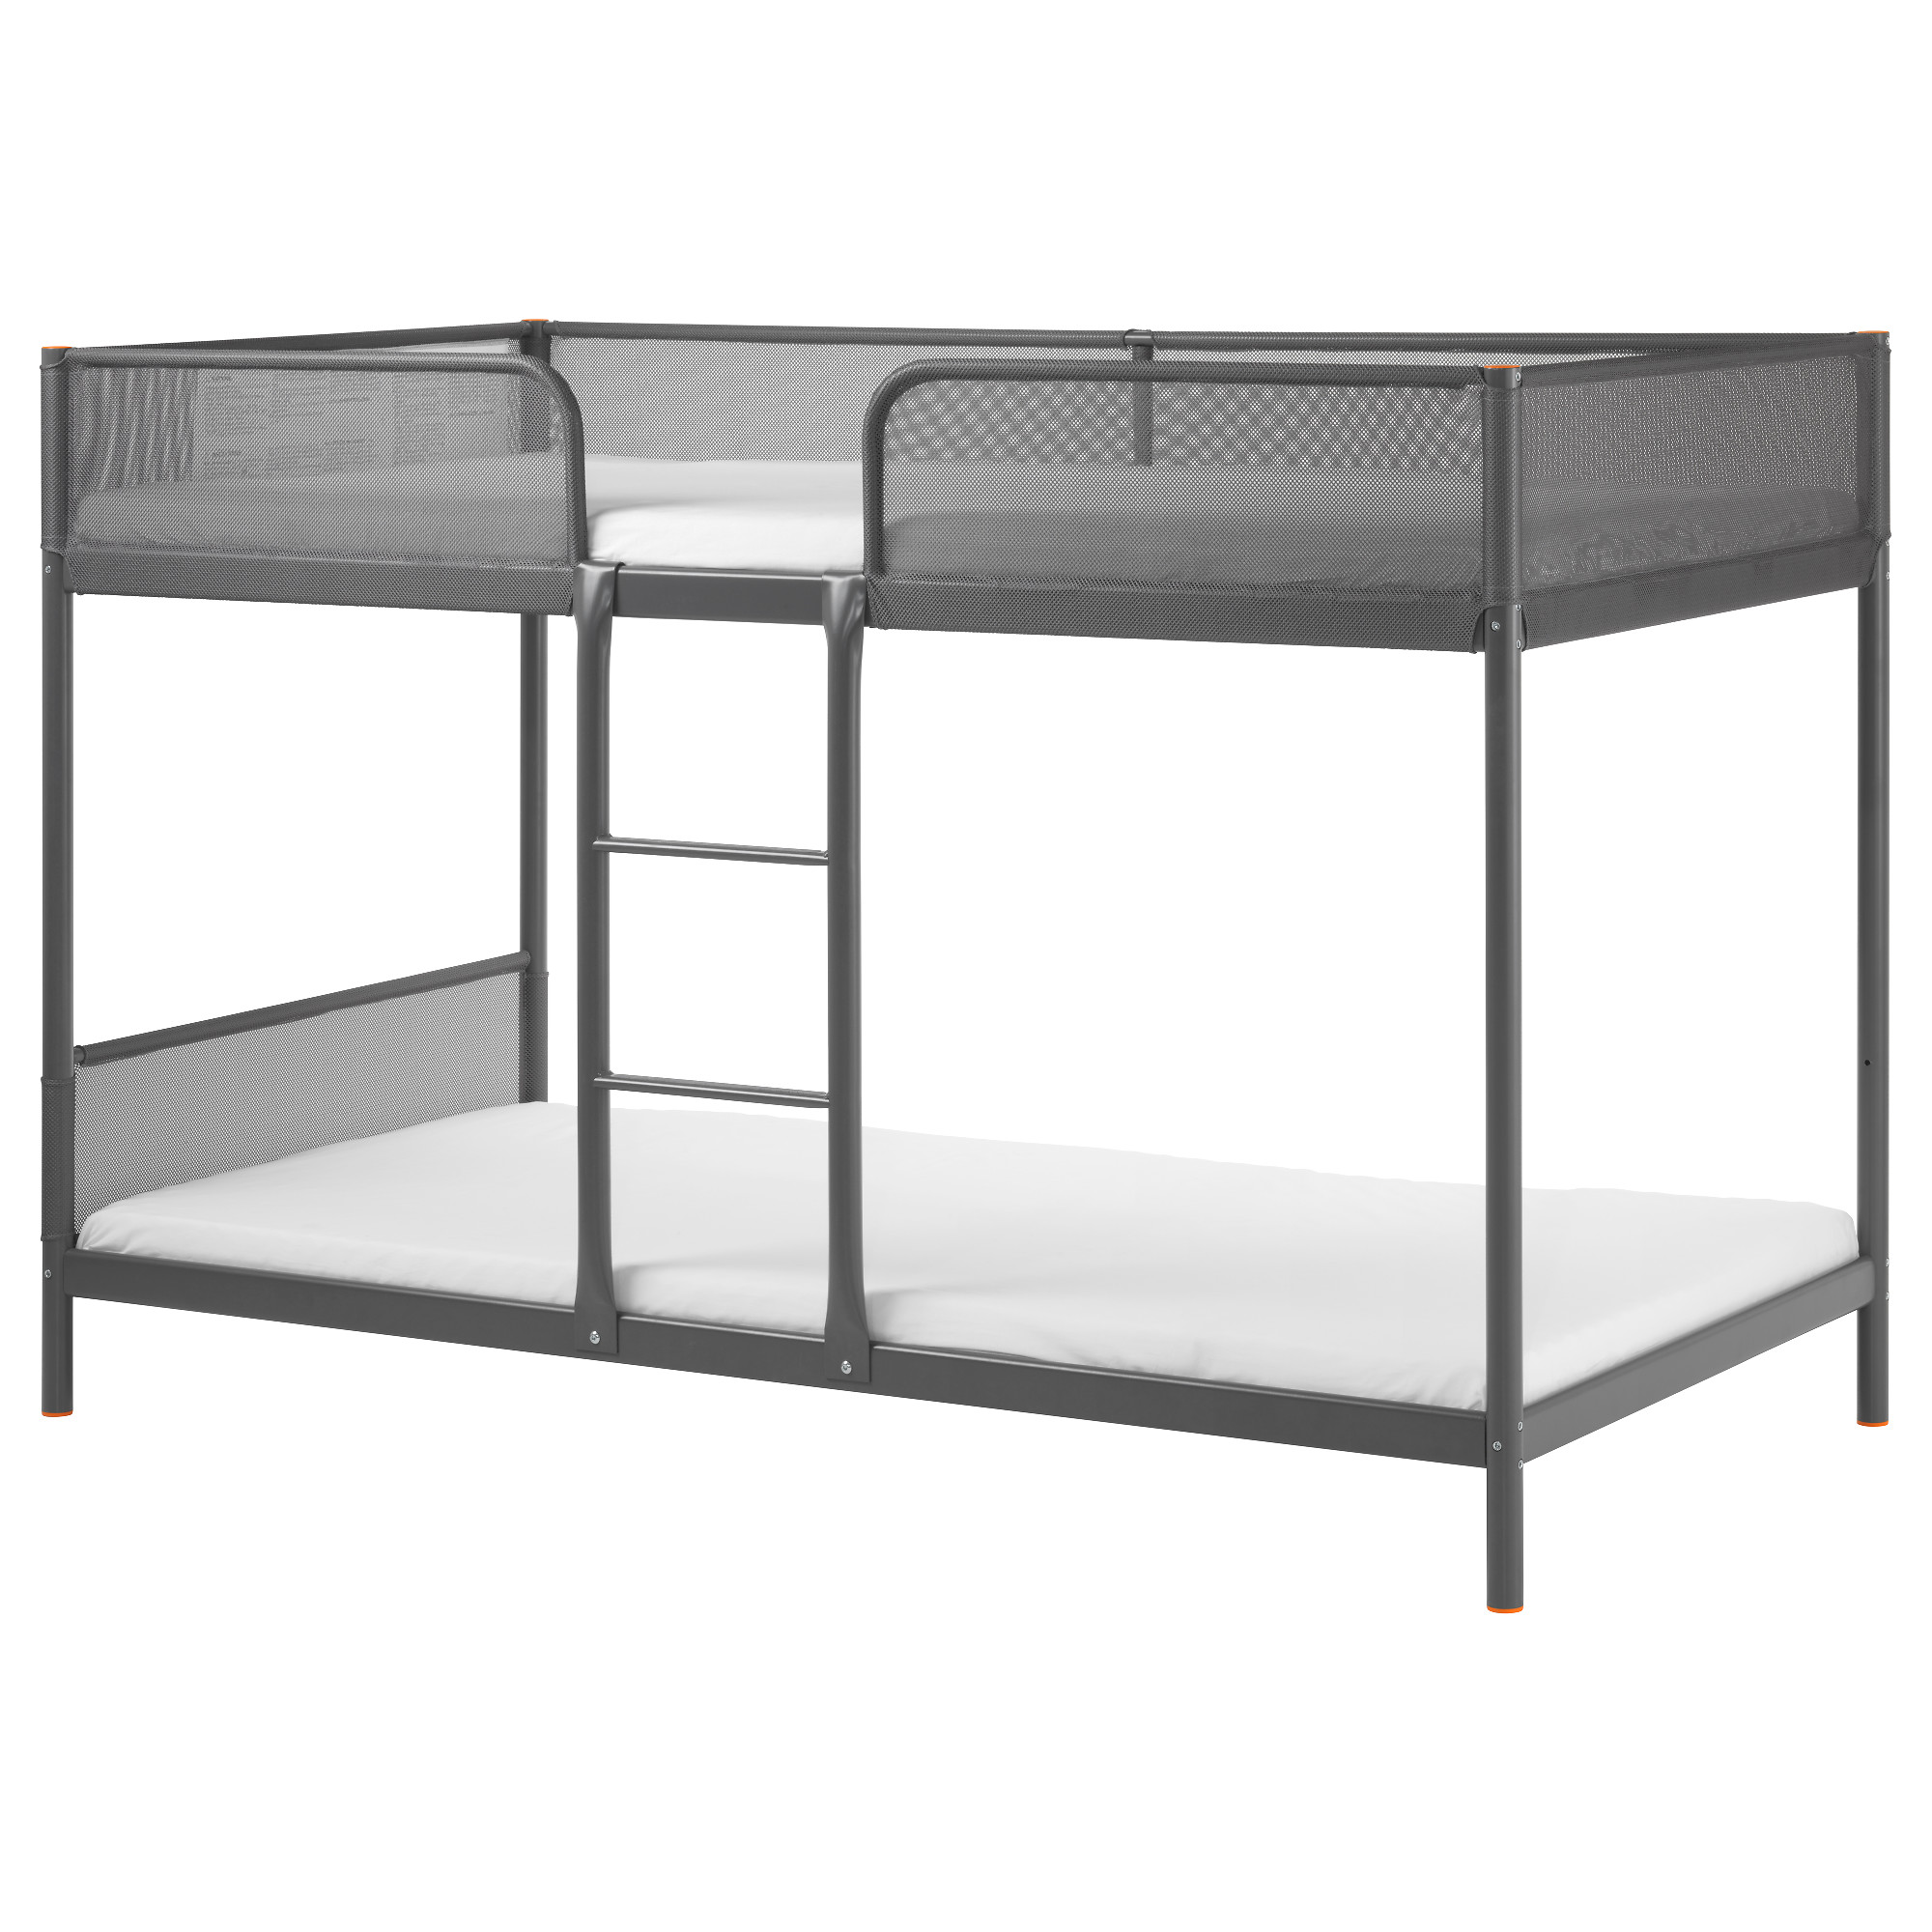 TUFFING Bunk Bed Frame IKEA - Ikea bunk bed